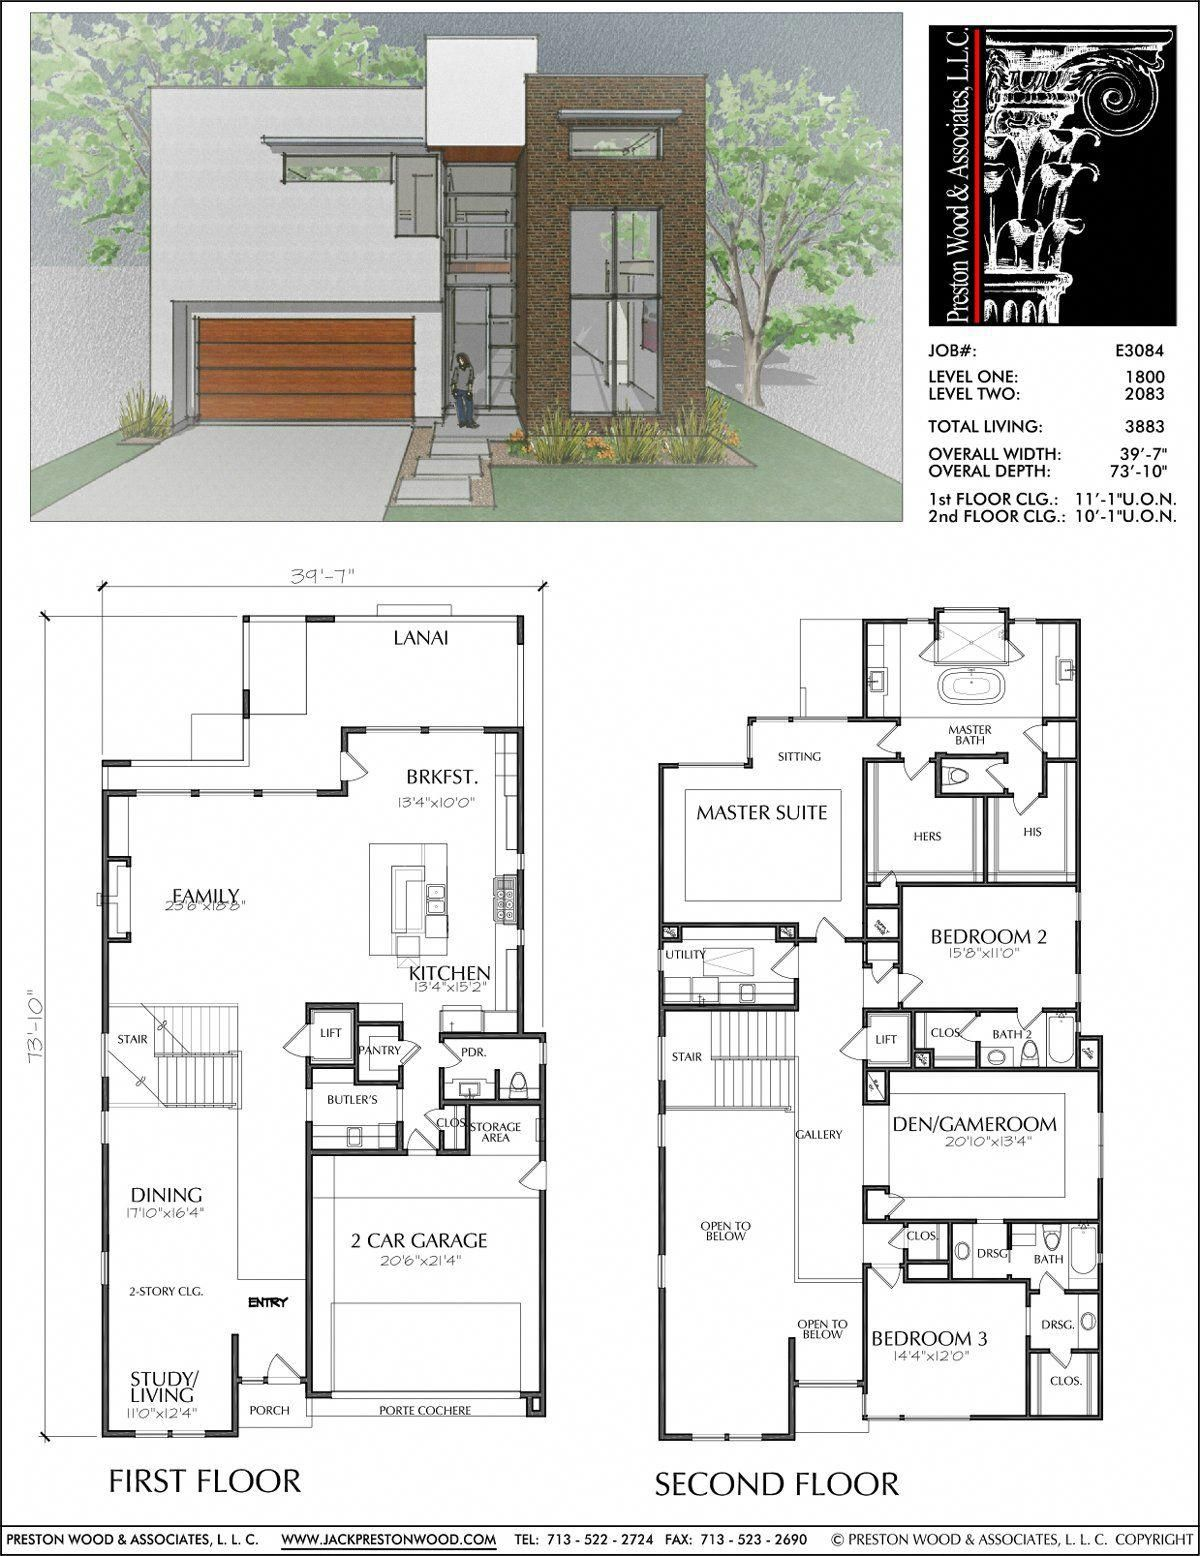 Unique Two Story House Plans, Floor Plans for Luxury Two ... on bungalows home plans, cottages home plans, semi-detached home plans, 1.5 storey home plans, one car garage home plans, brick home plans, duplex home plans, white home plans, custom home plans, side-split home plans, double home plans, townhouse home plans, two-story home plans,